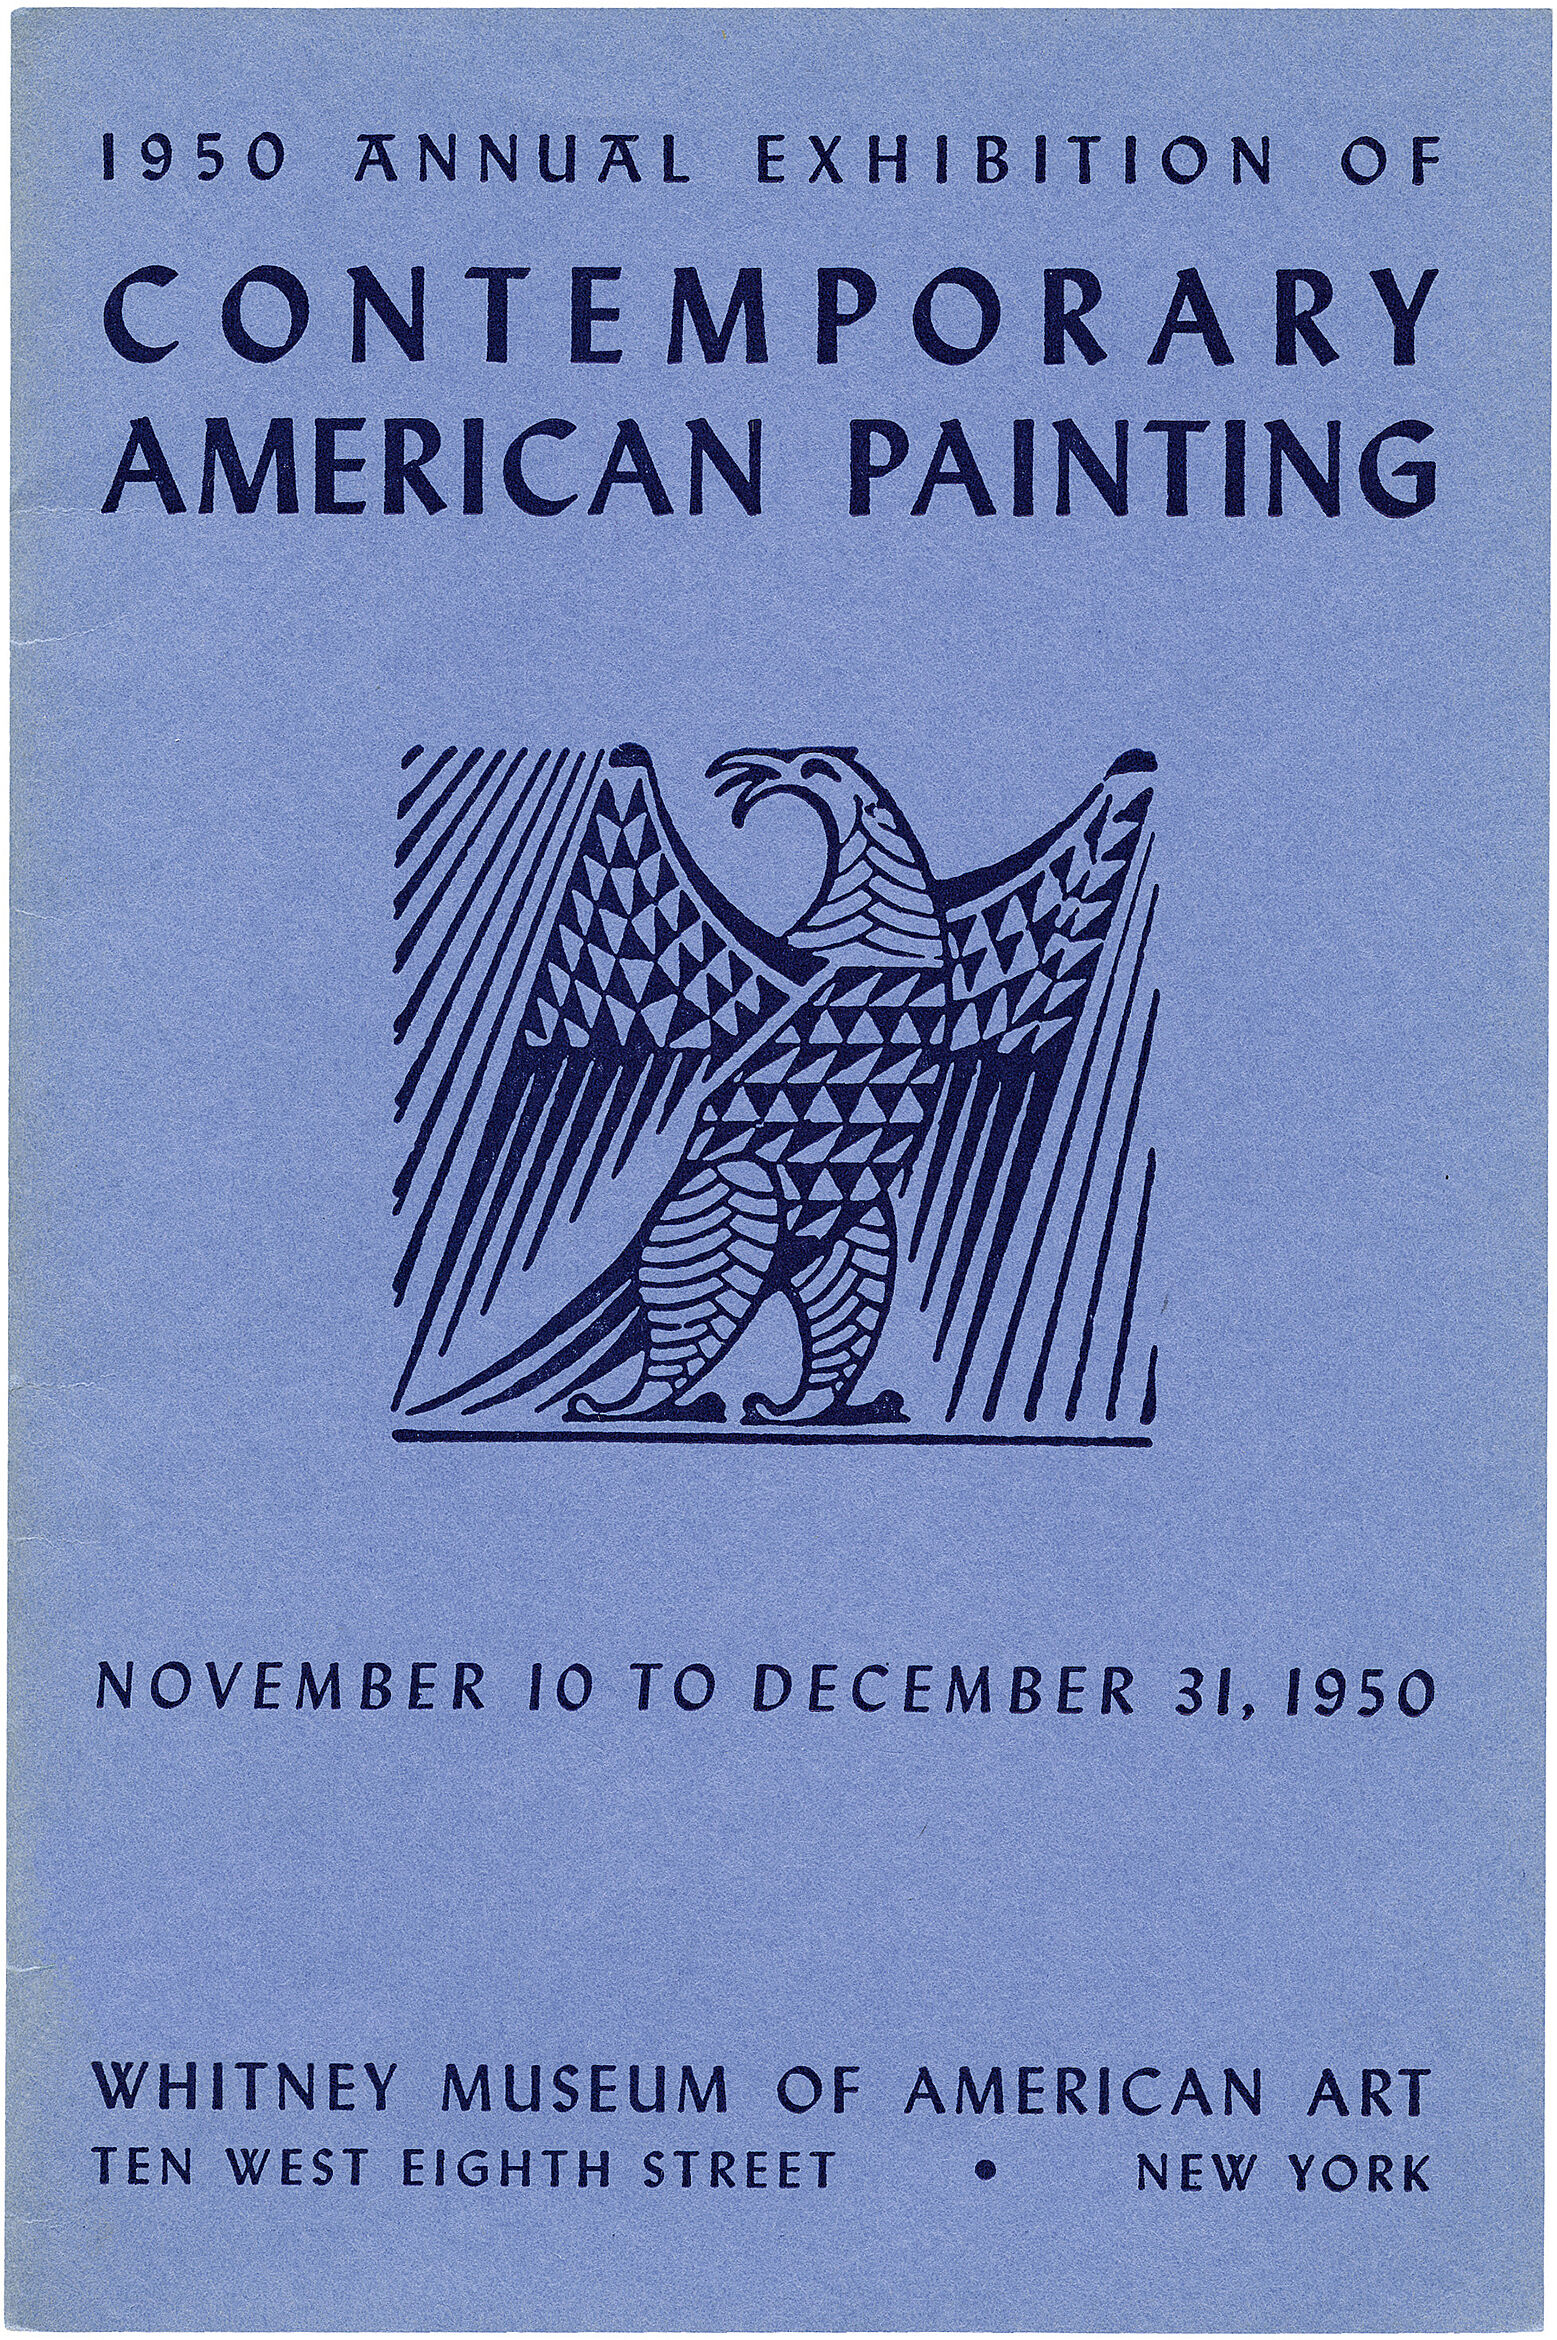 Cover for 1950 Annual Exhibition of Contemporary American Painting catalogue